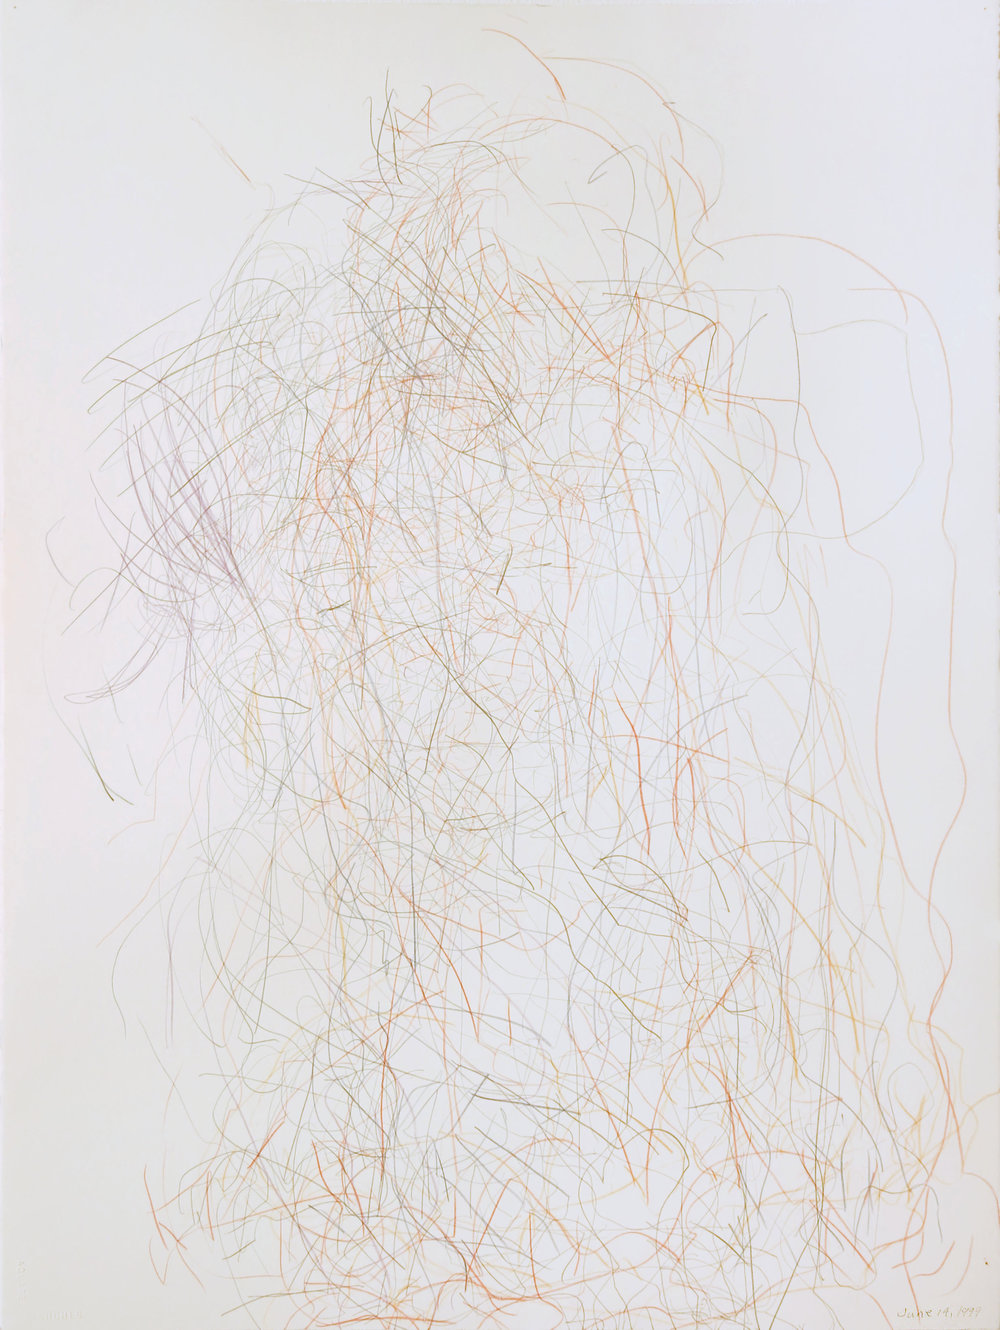 Edward Finnegan,  June 14, 1999 (Portraits series) , 1999, Graphite and colored pencil on paper, 30h x 22.5w in.